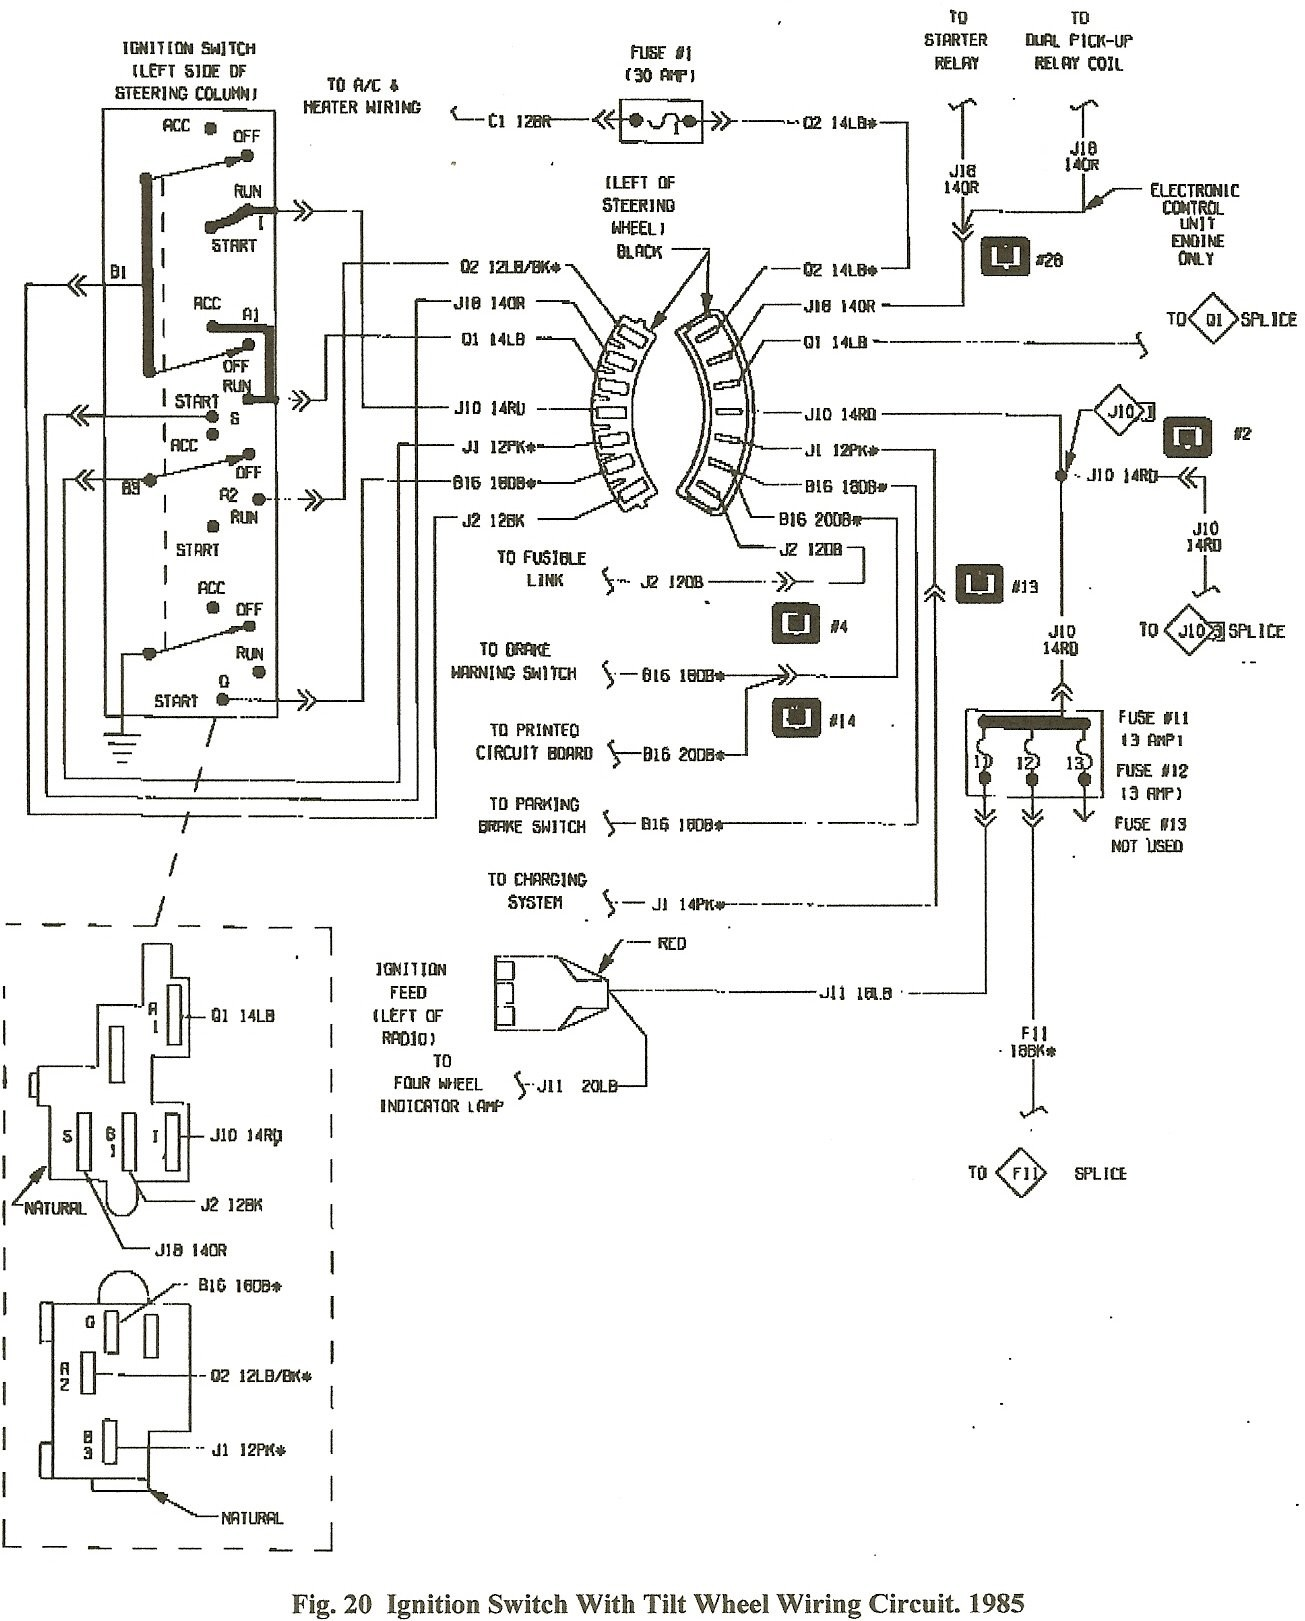 small resolution of 1984 dodge pickup wiring diagram wiring library diagram a4 dodge charger engine harness schematic 1984 dodge charger wiring diagram